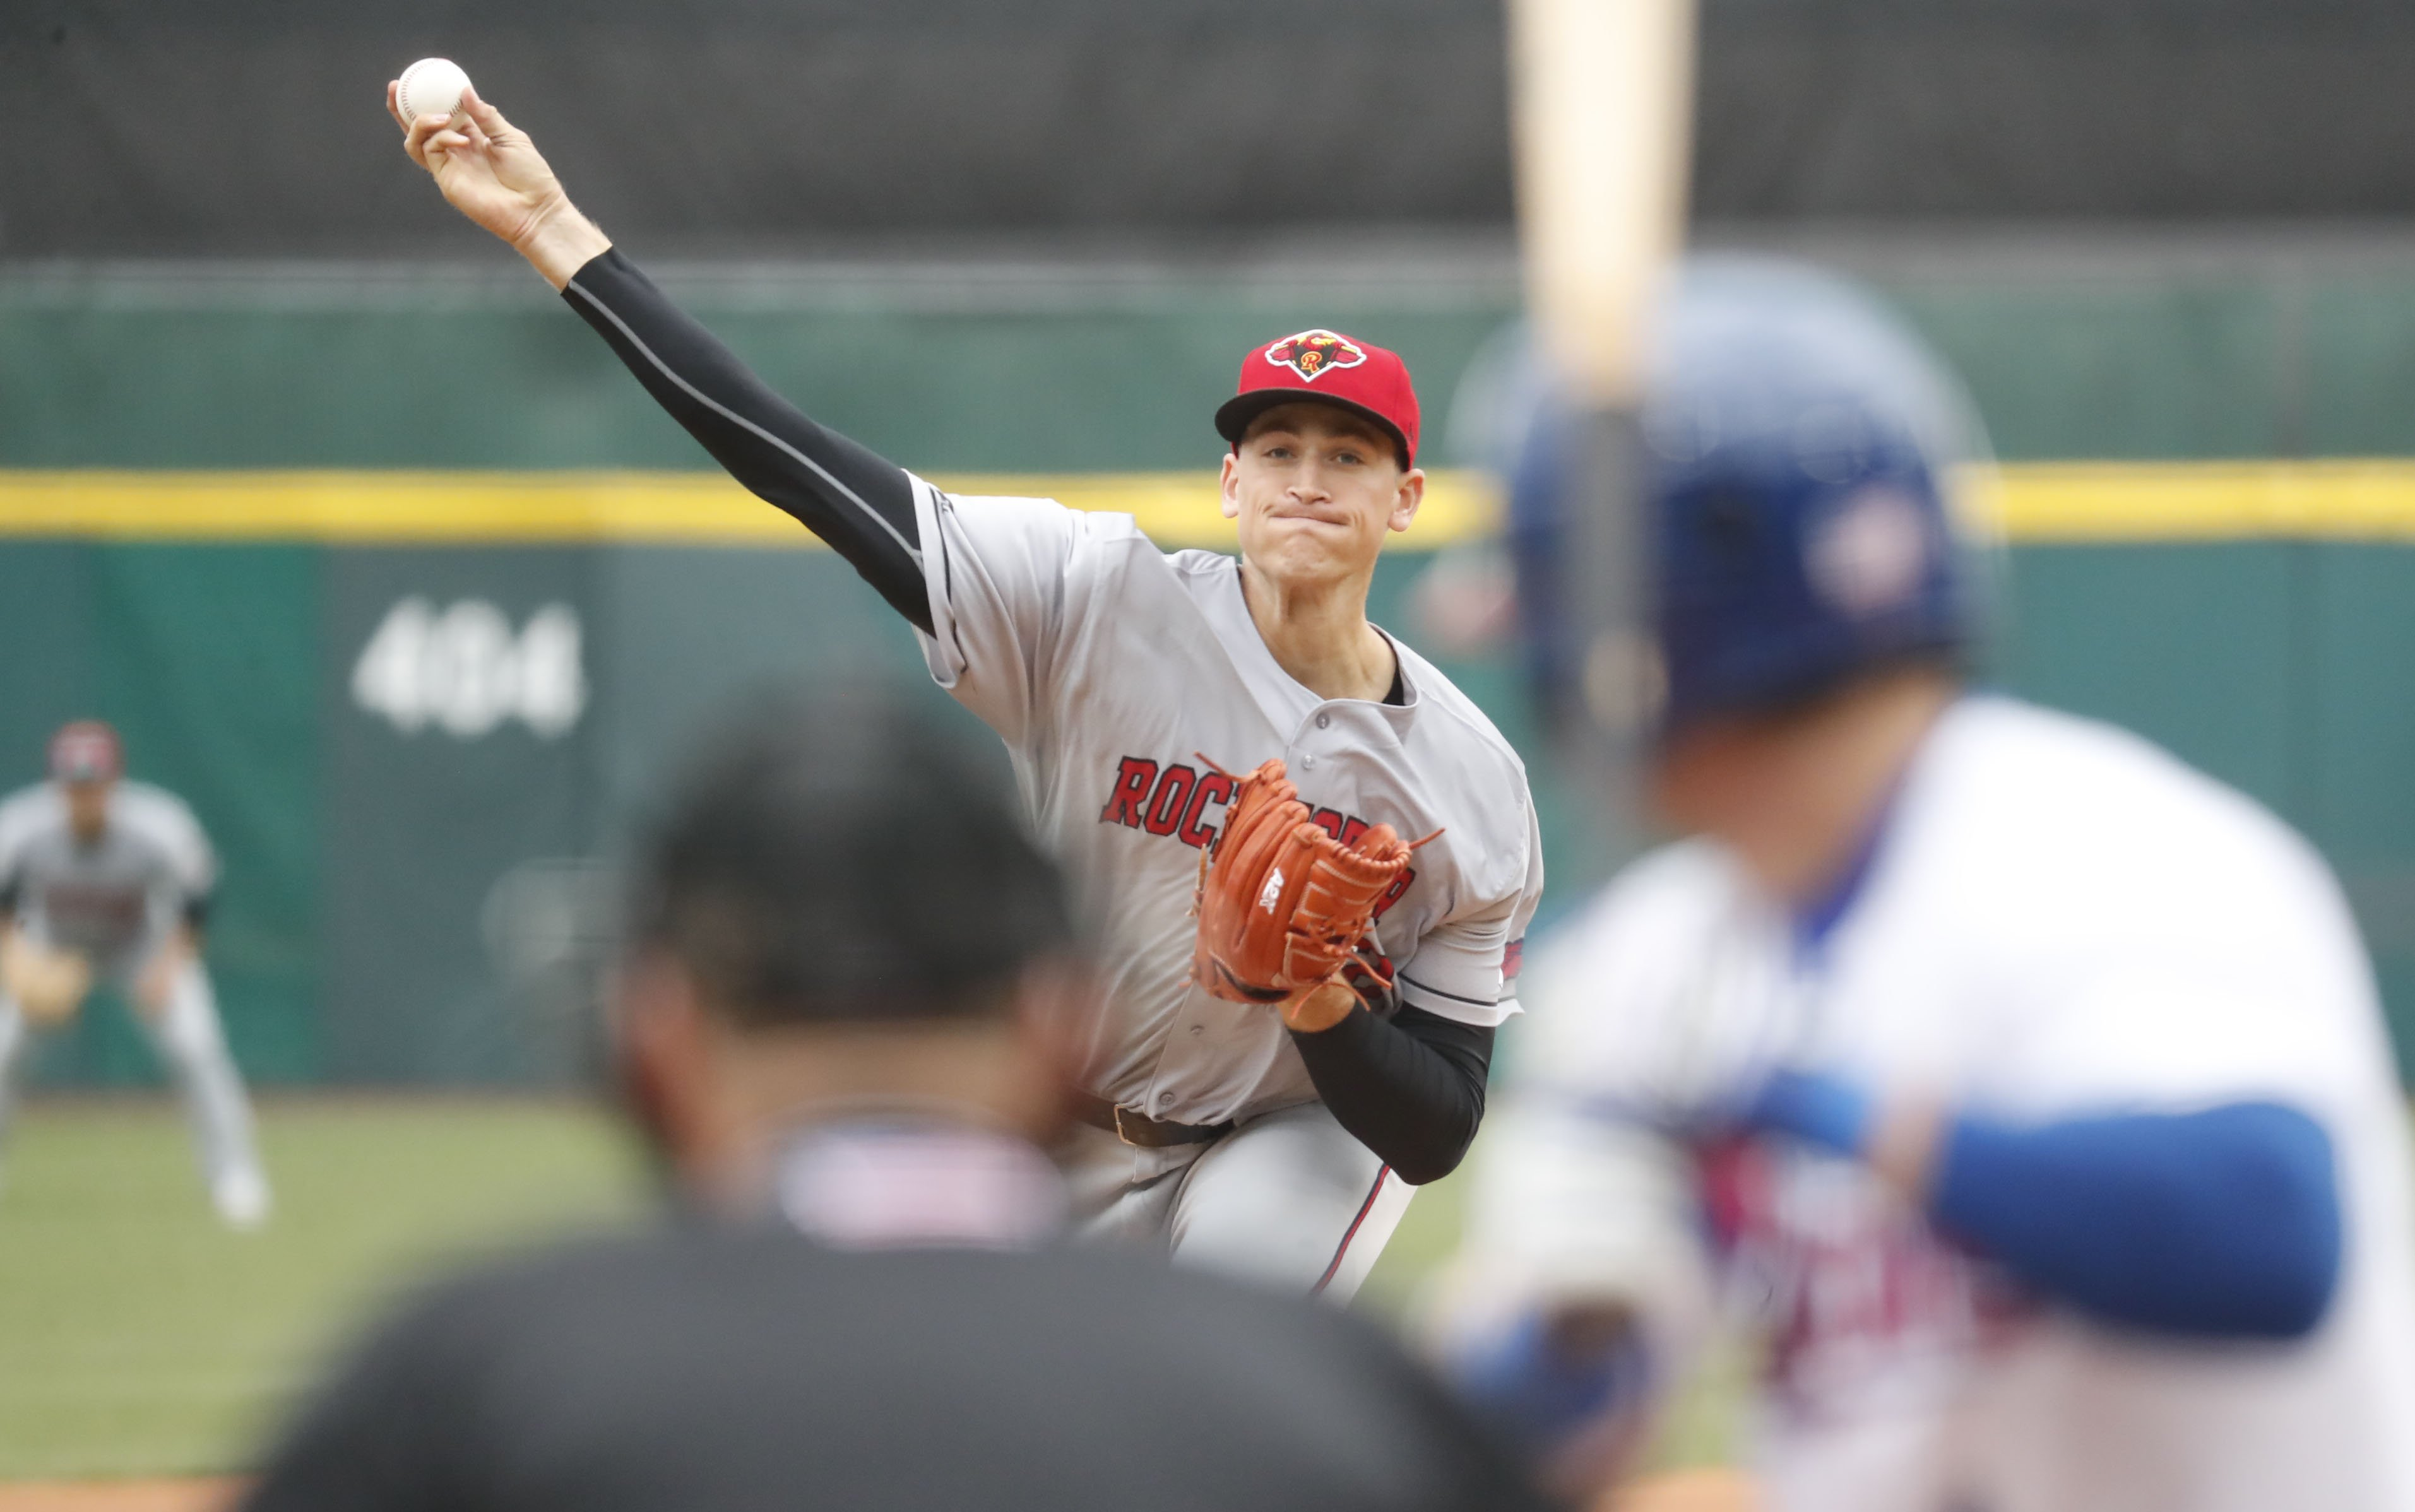 Aaron Slegers threw six innings of no-hit ball for Rochester against the Bisons. (Harry Scull Jr./Buffalo News)